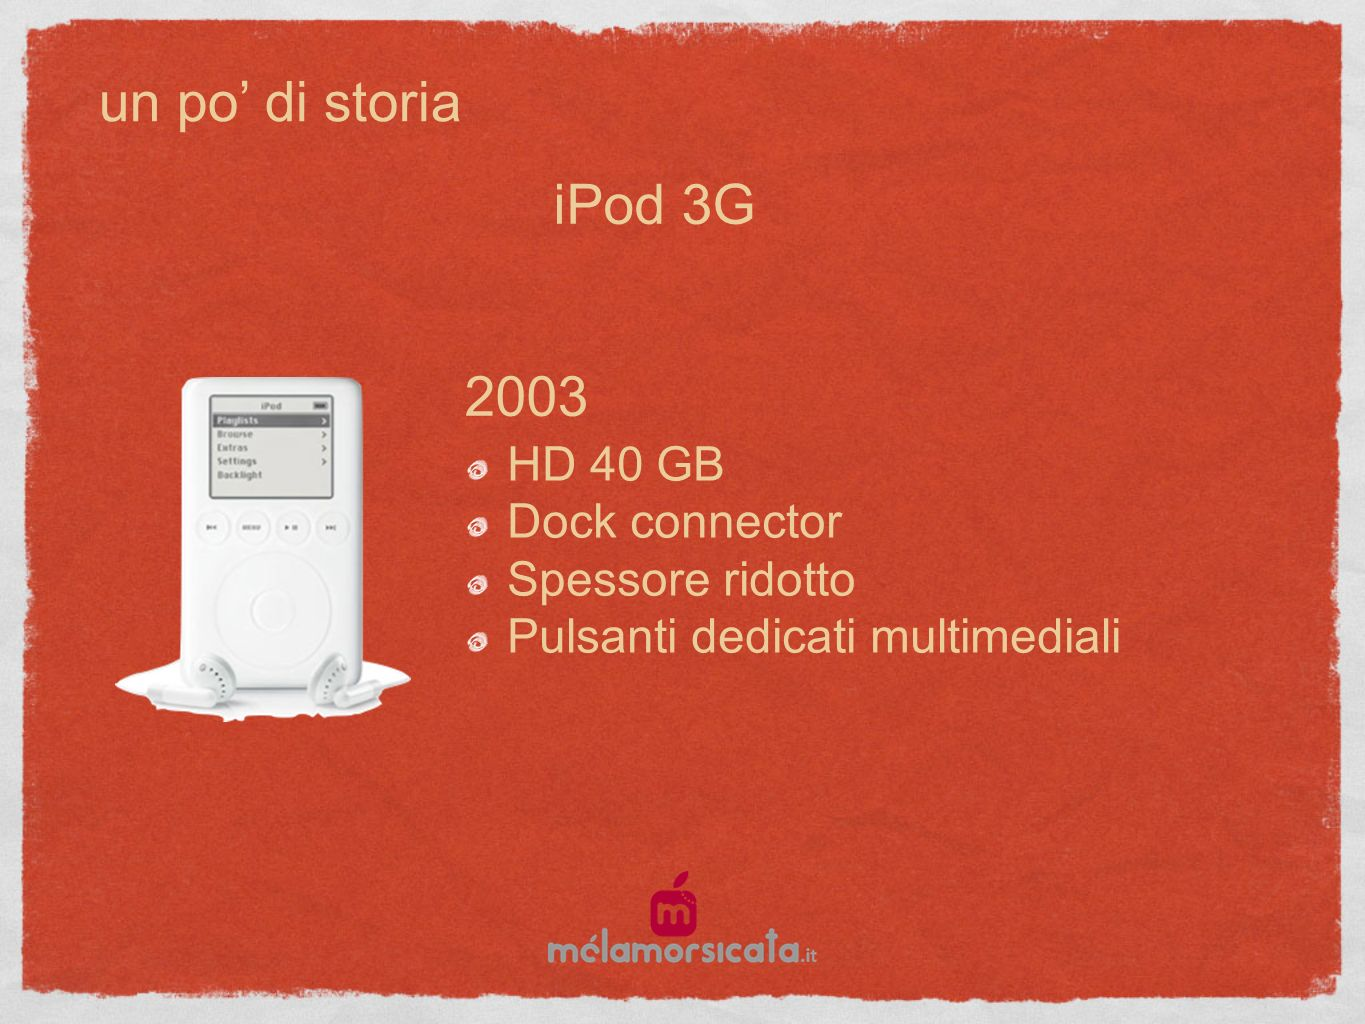 un po di storia 2003 HD 40 GB Dock connector Spessore ridotto Pulsanti dedicati multimediali iPod 3G